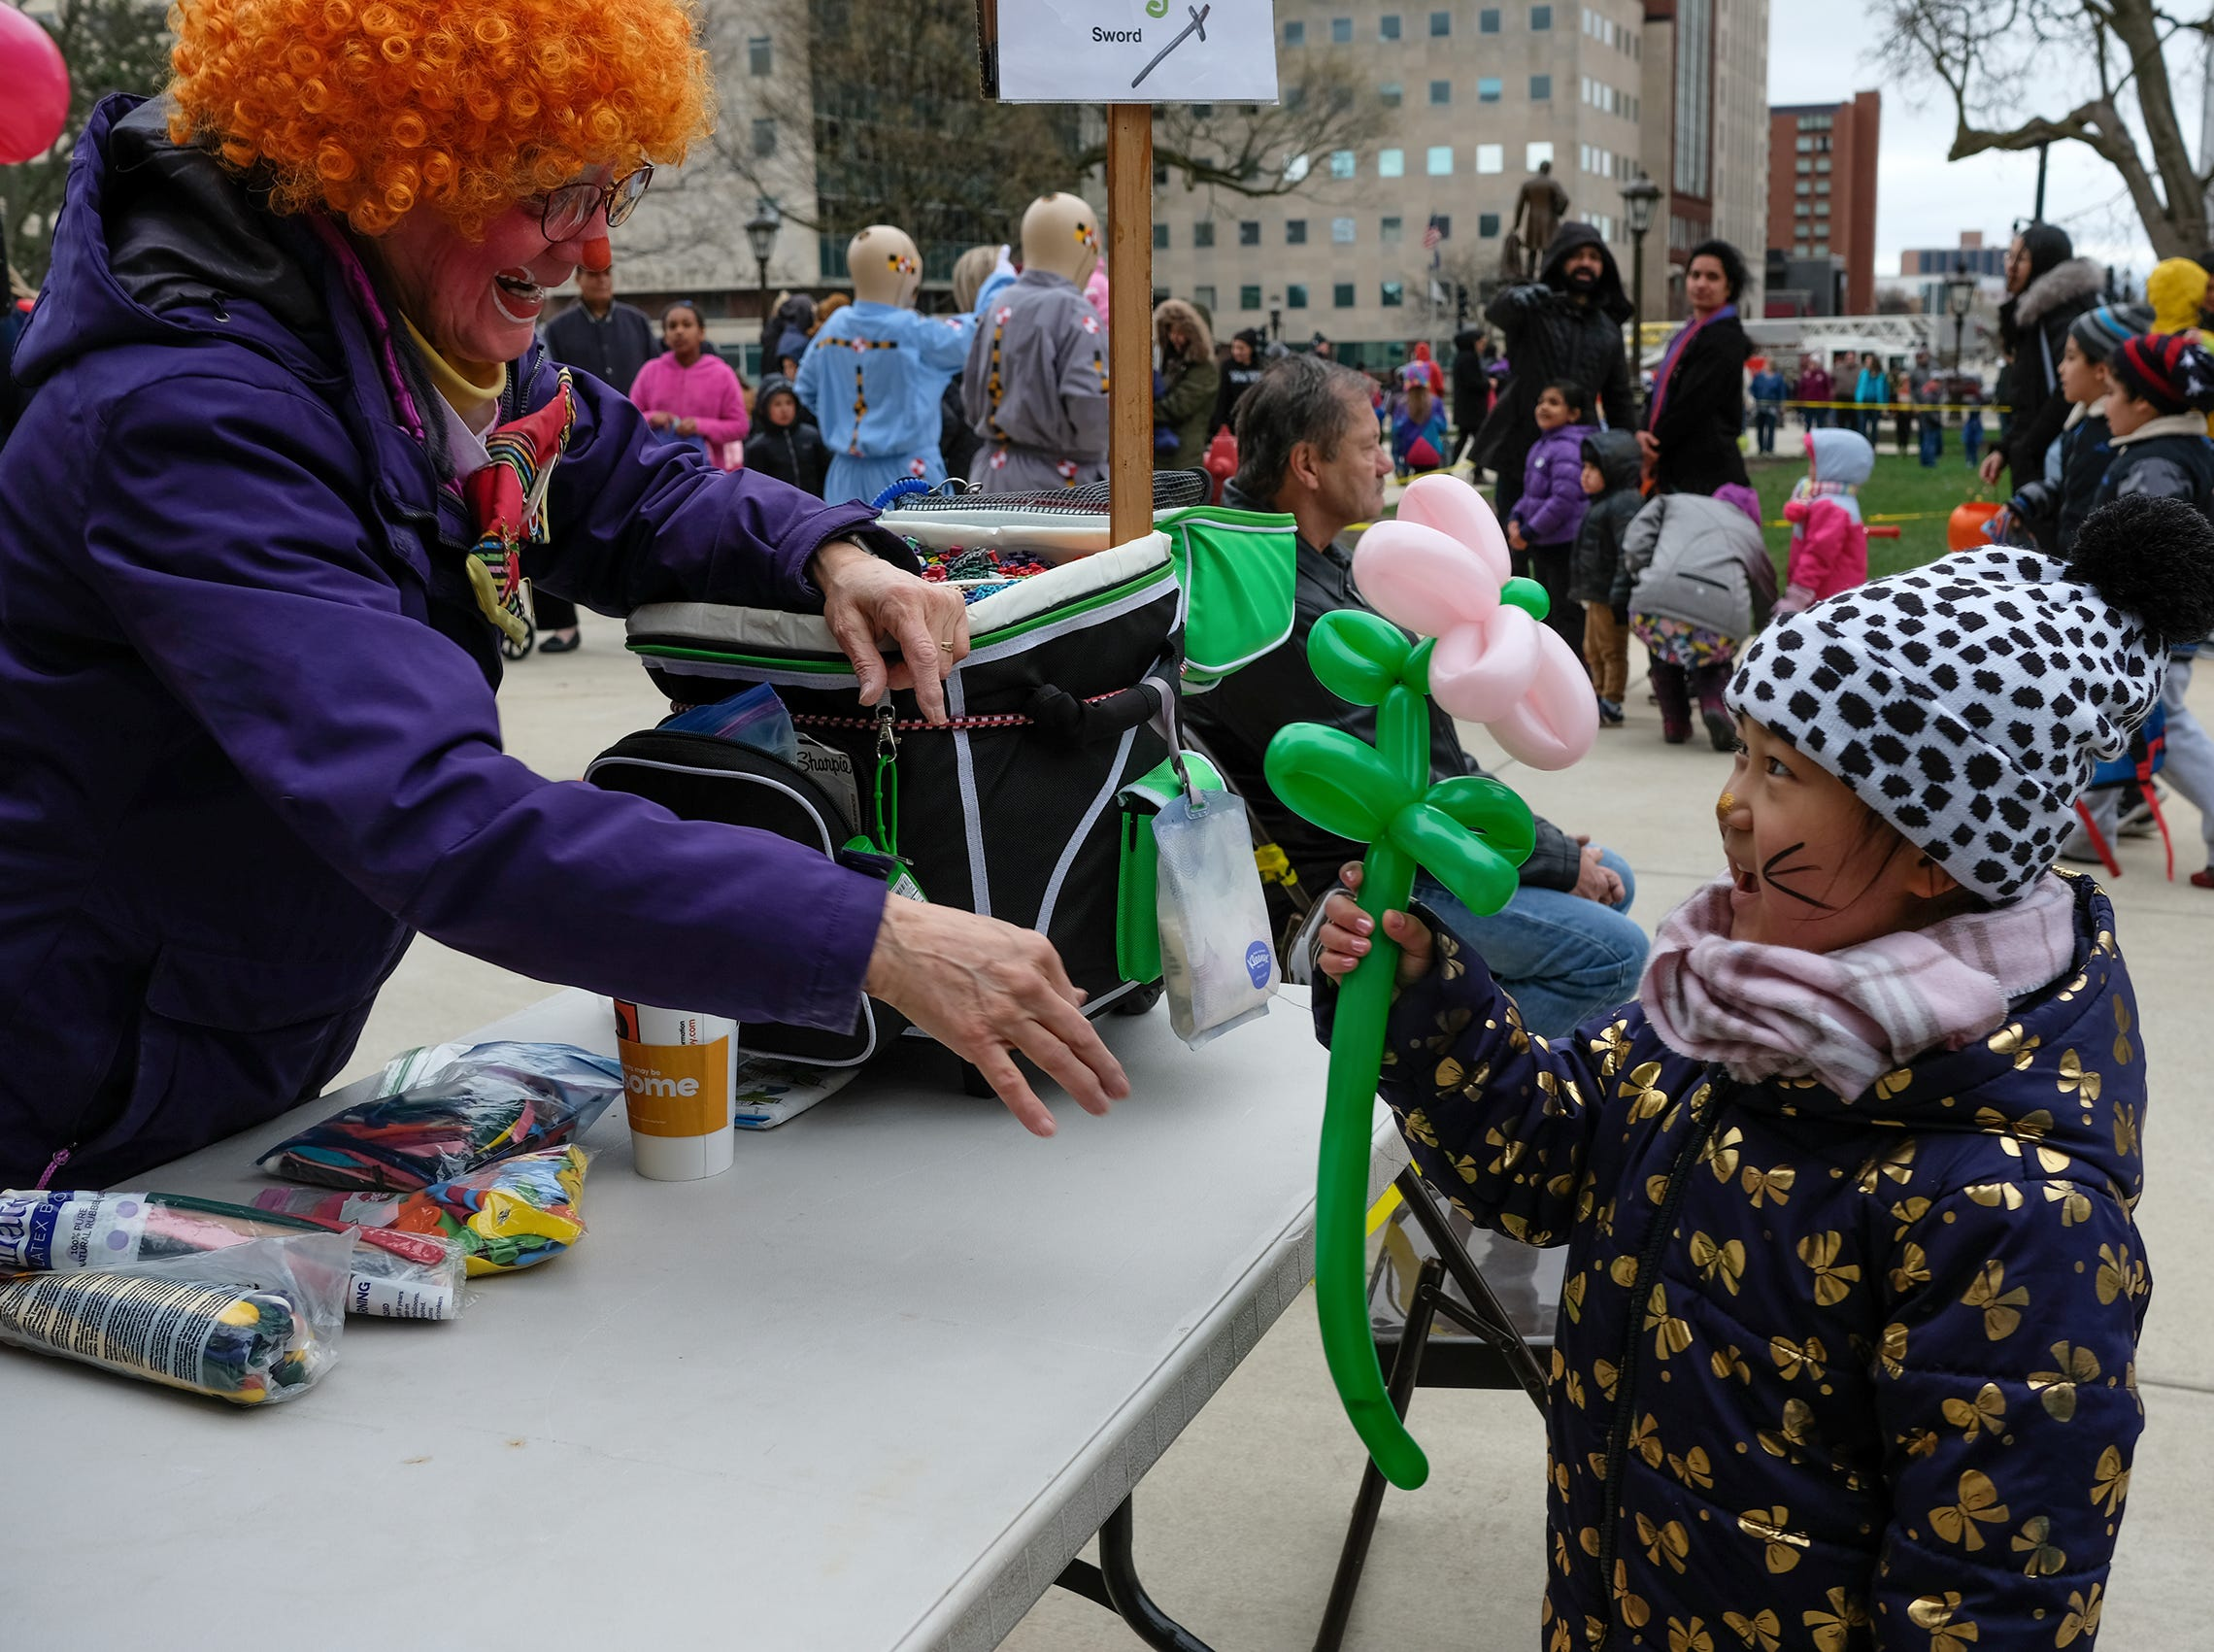 Jiexi Li, 5, seems pleased as she gets a flower balloon from one of the clowns at the annual Lansing Jaycees Easter Egg Hunt at the Capitol Saturday, April 20, 2019.